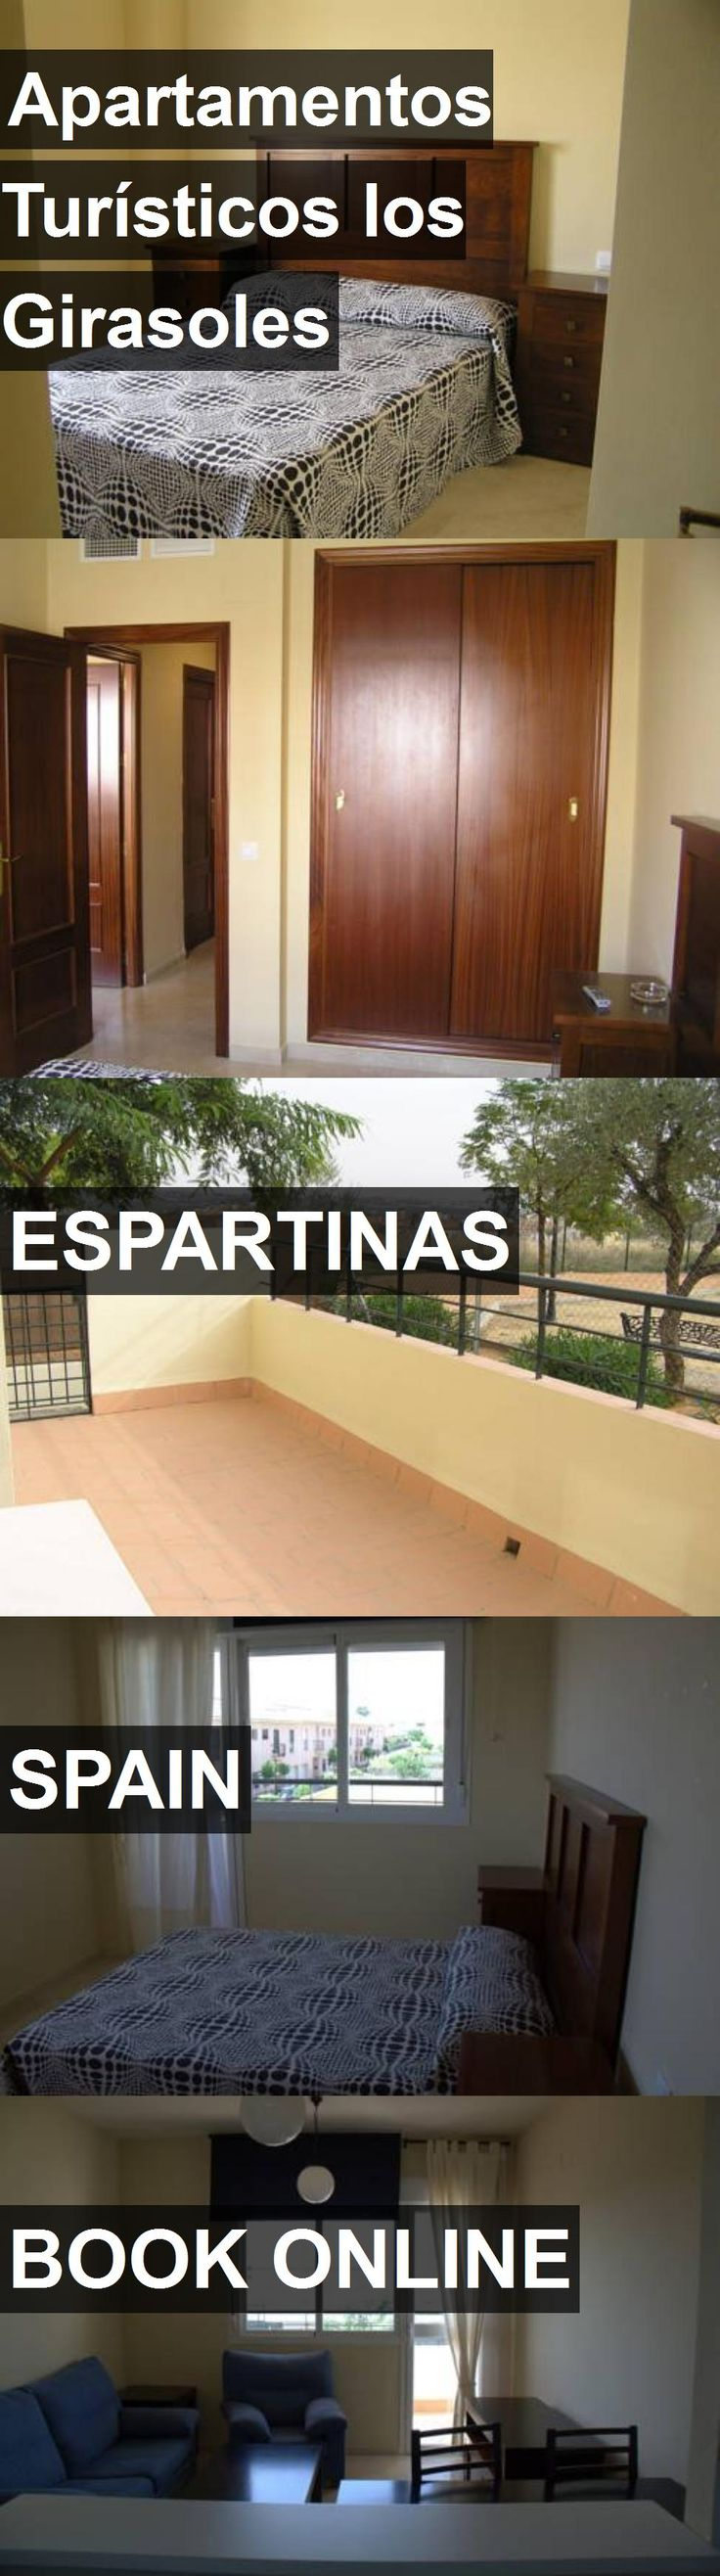 Hotel Apartamentos Turísticos los Girasoles in Espartinas, Spain. For more information, photos, reviews and best prices please follow the link. #Spain #Espartinas #travel #vacation #hotel